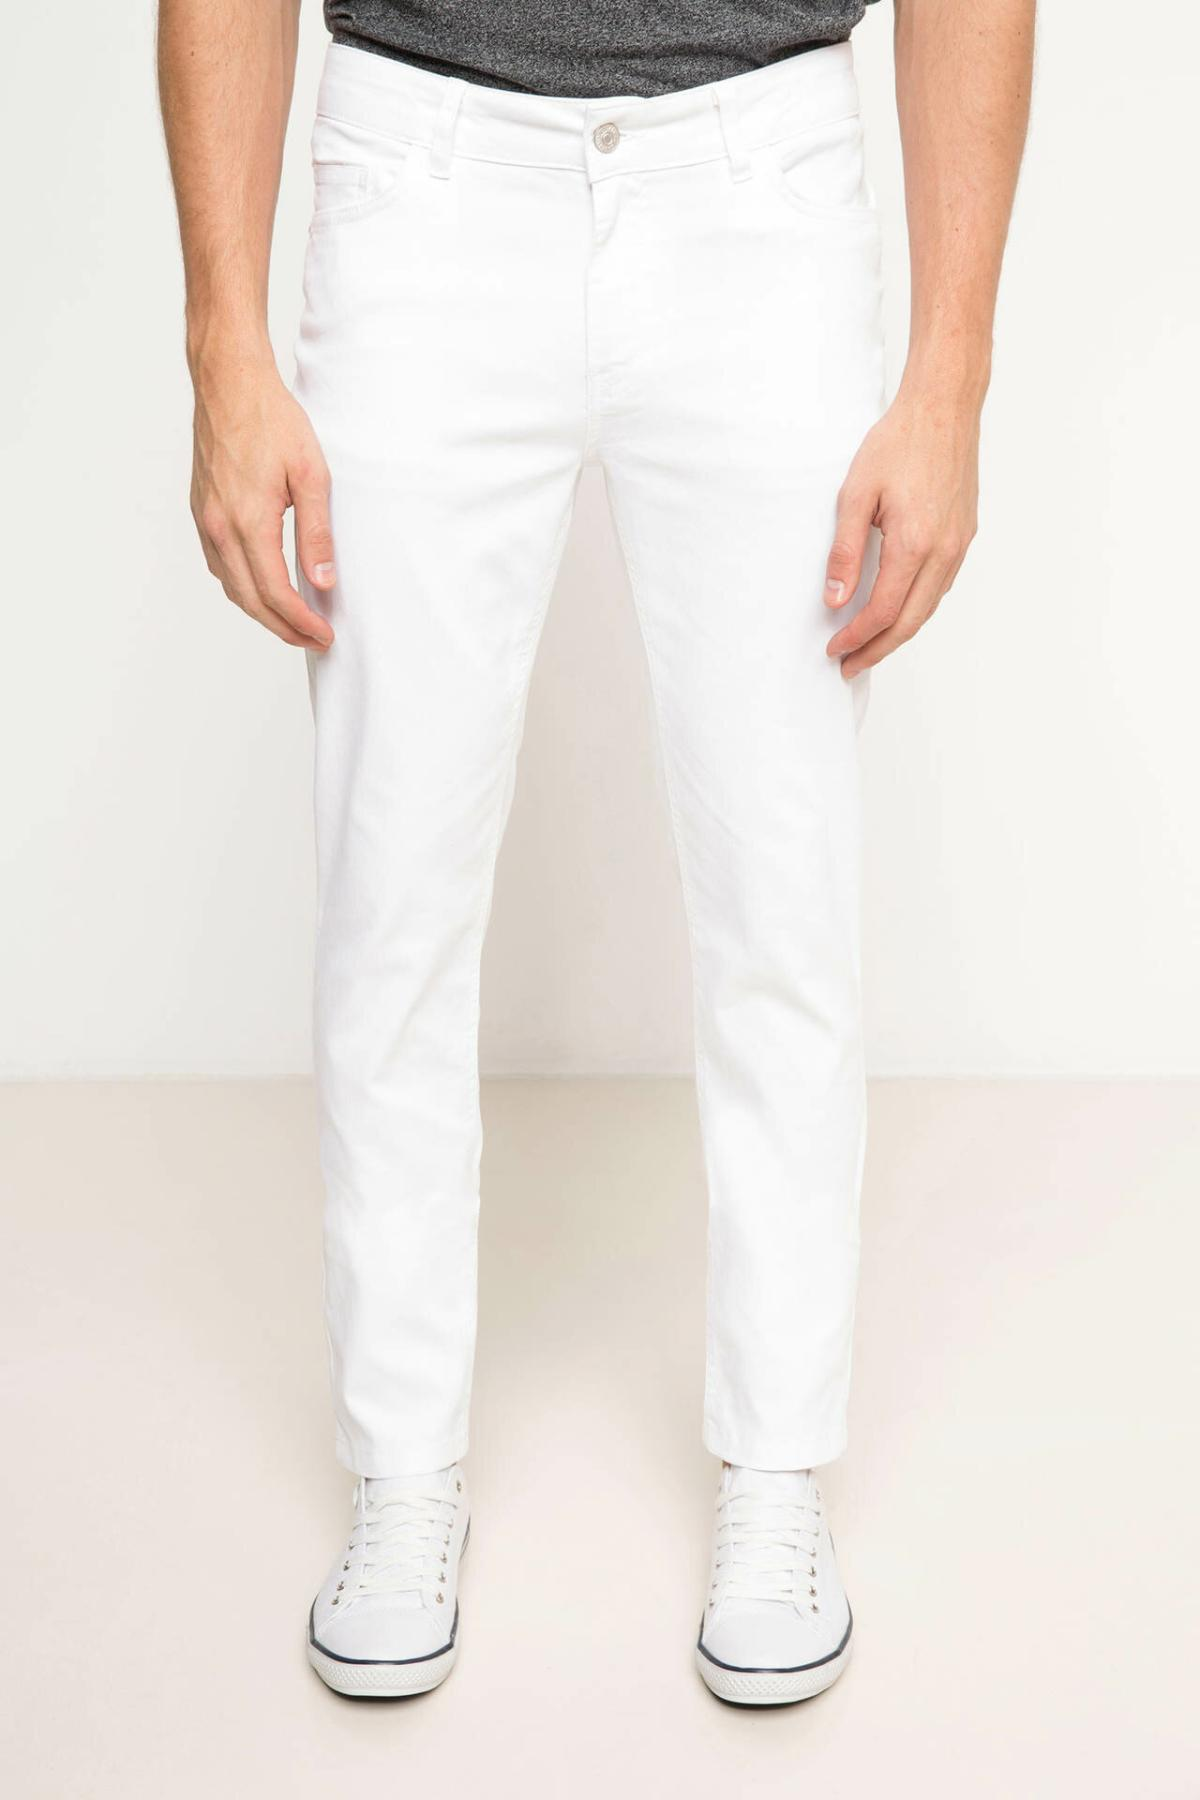 DeFacto Man White Long Pants Slim Casual Autumn Spring Wear Long Trousers-H4269AZ17SM